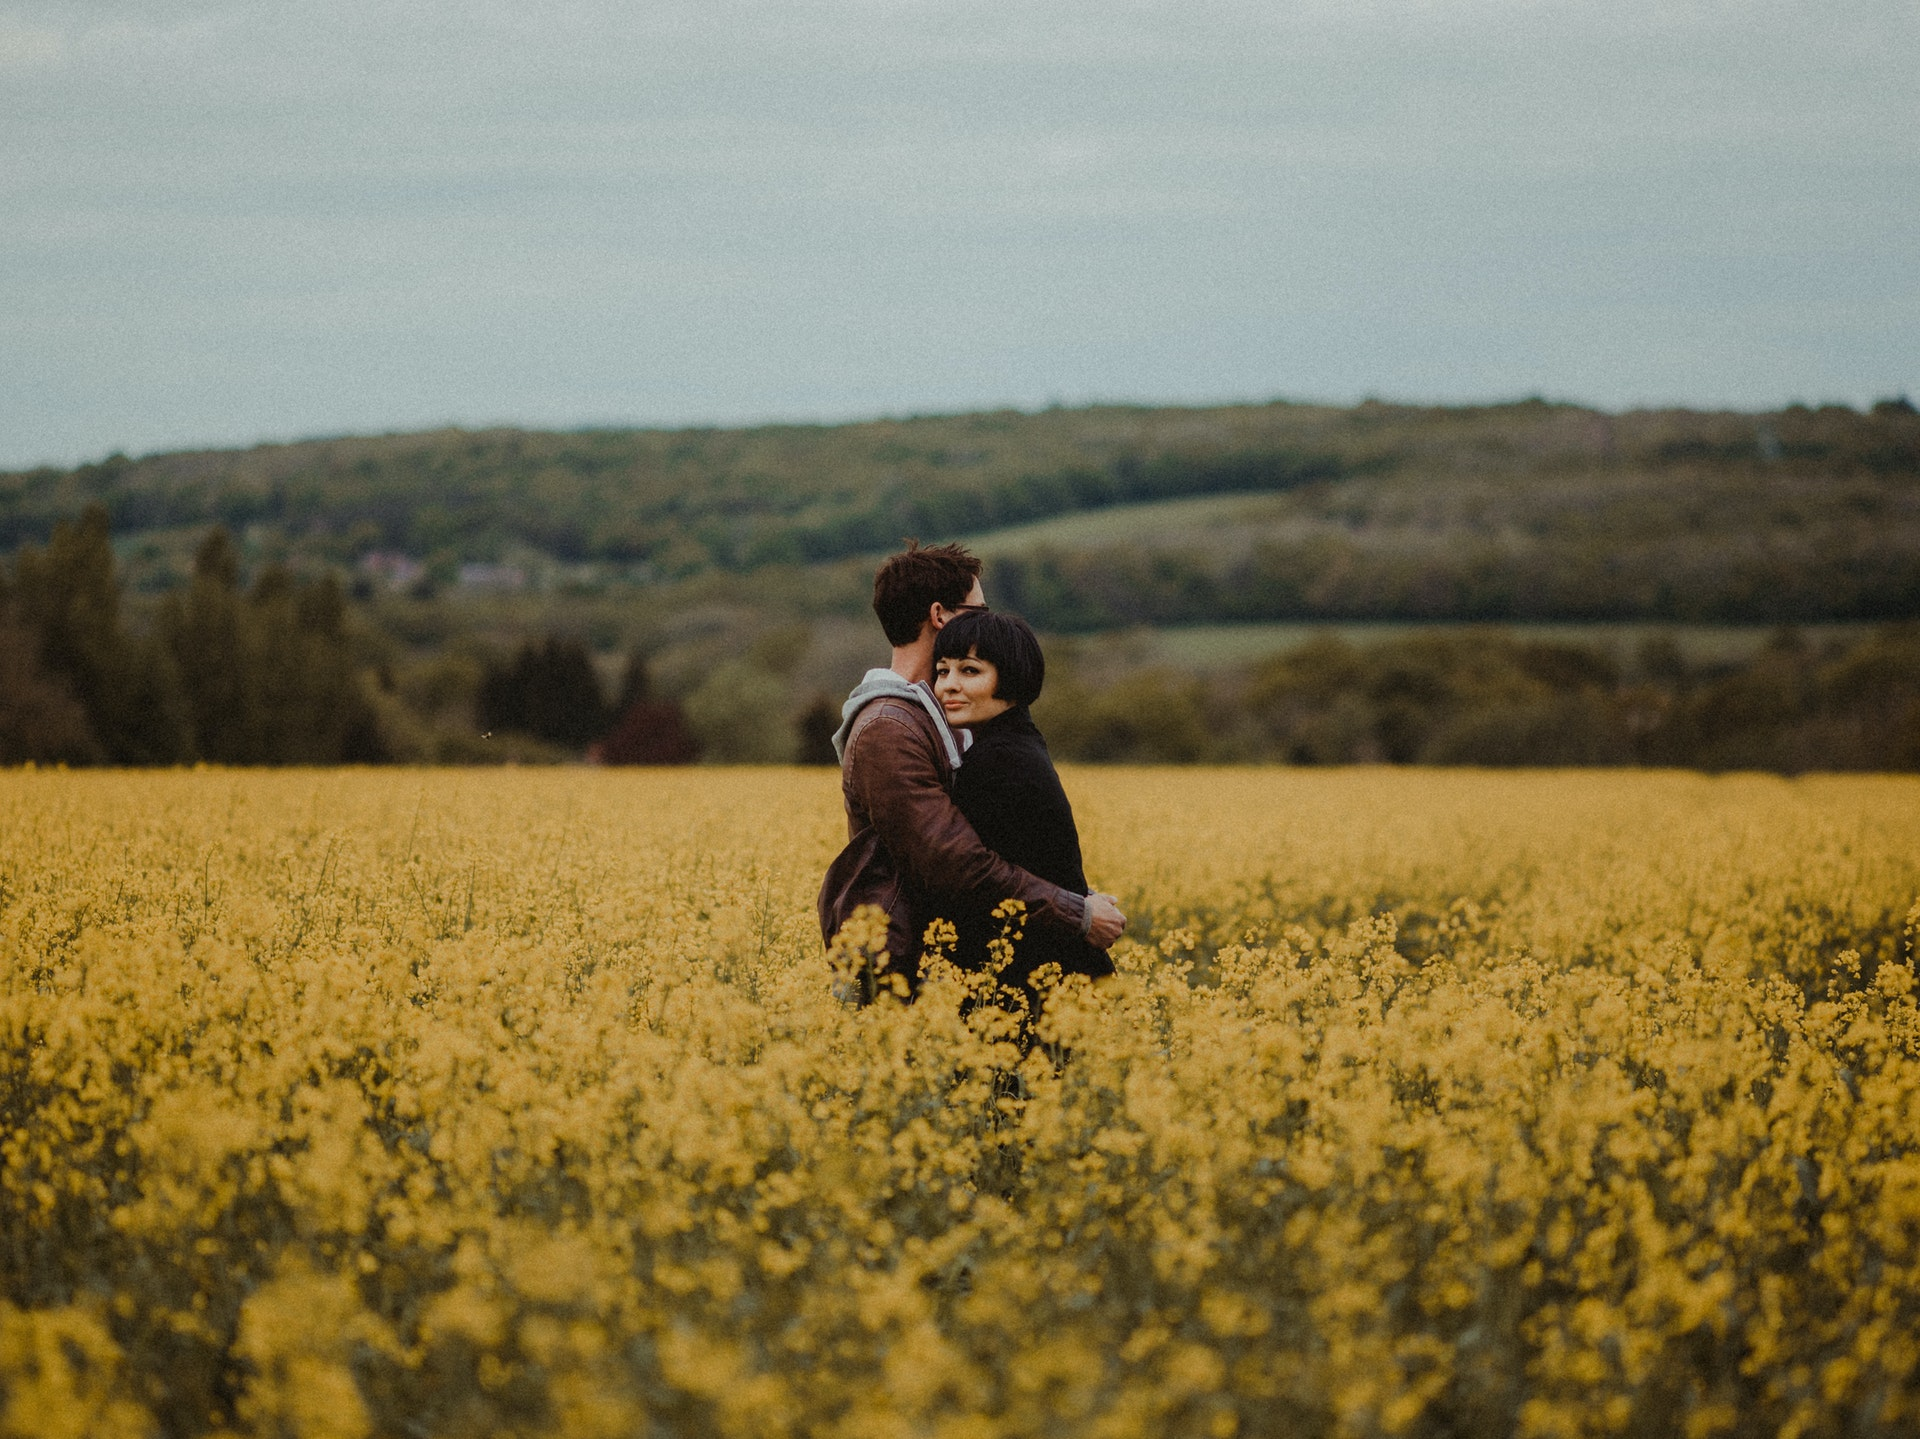 Male and female in a field of flowers hugging